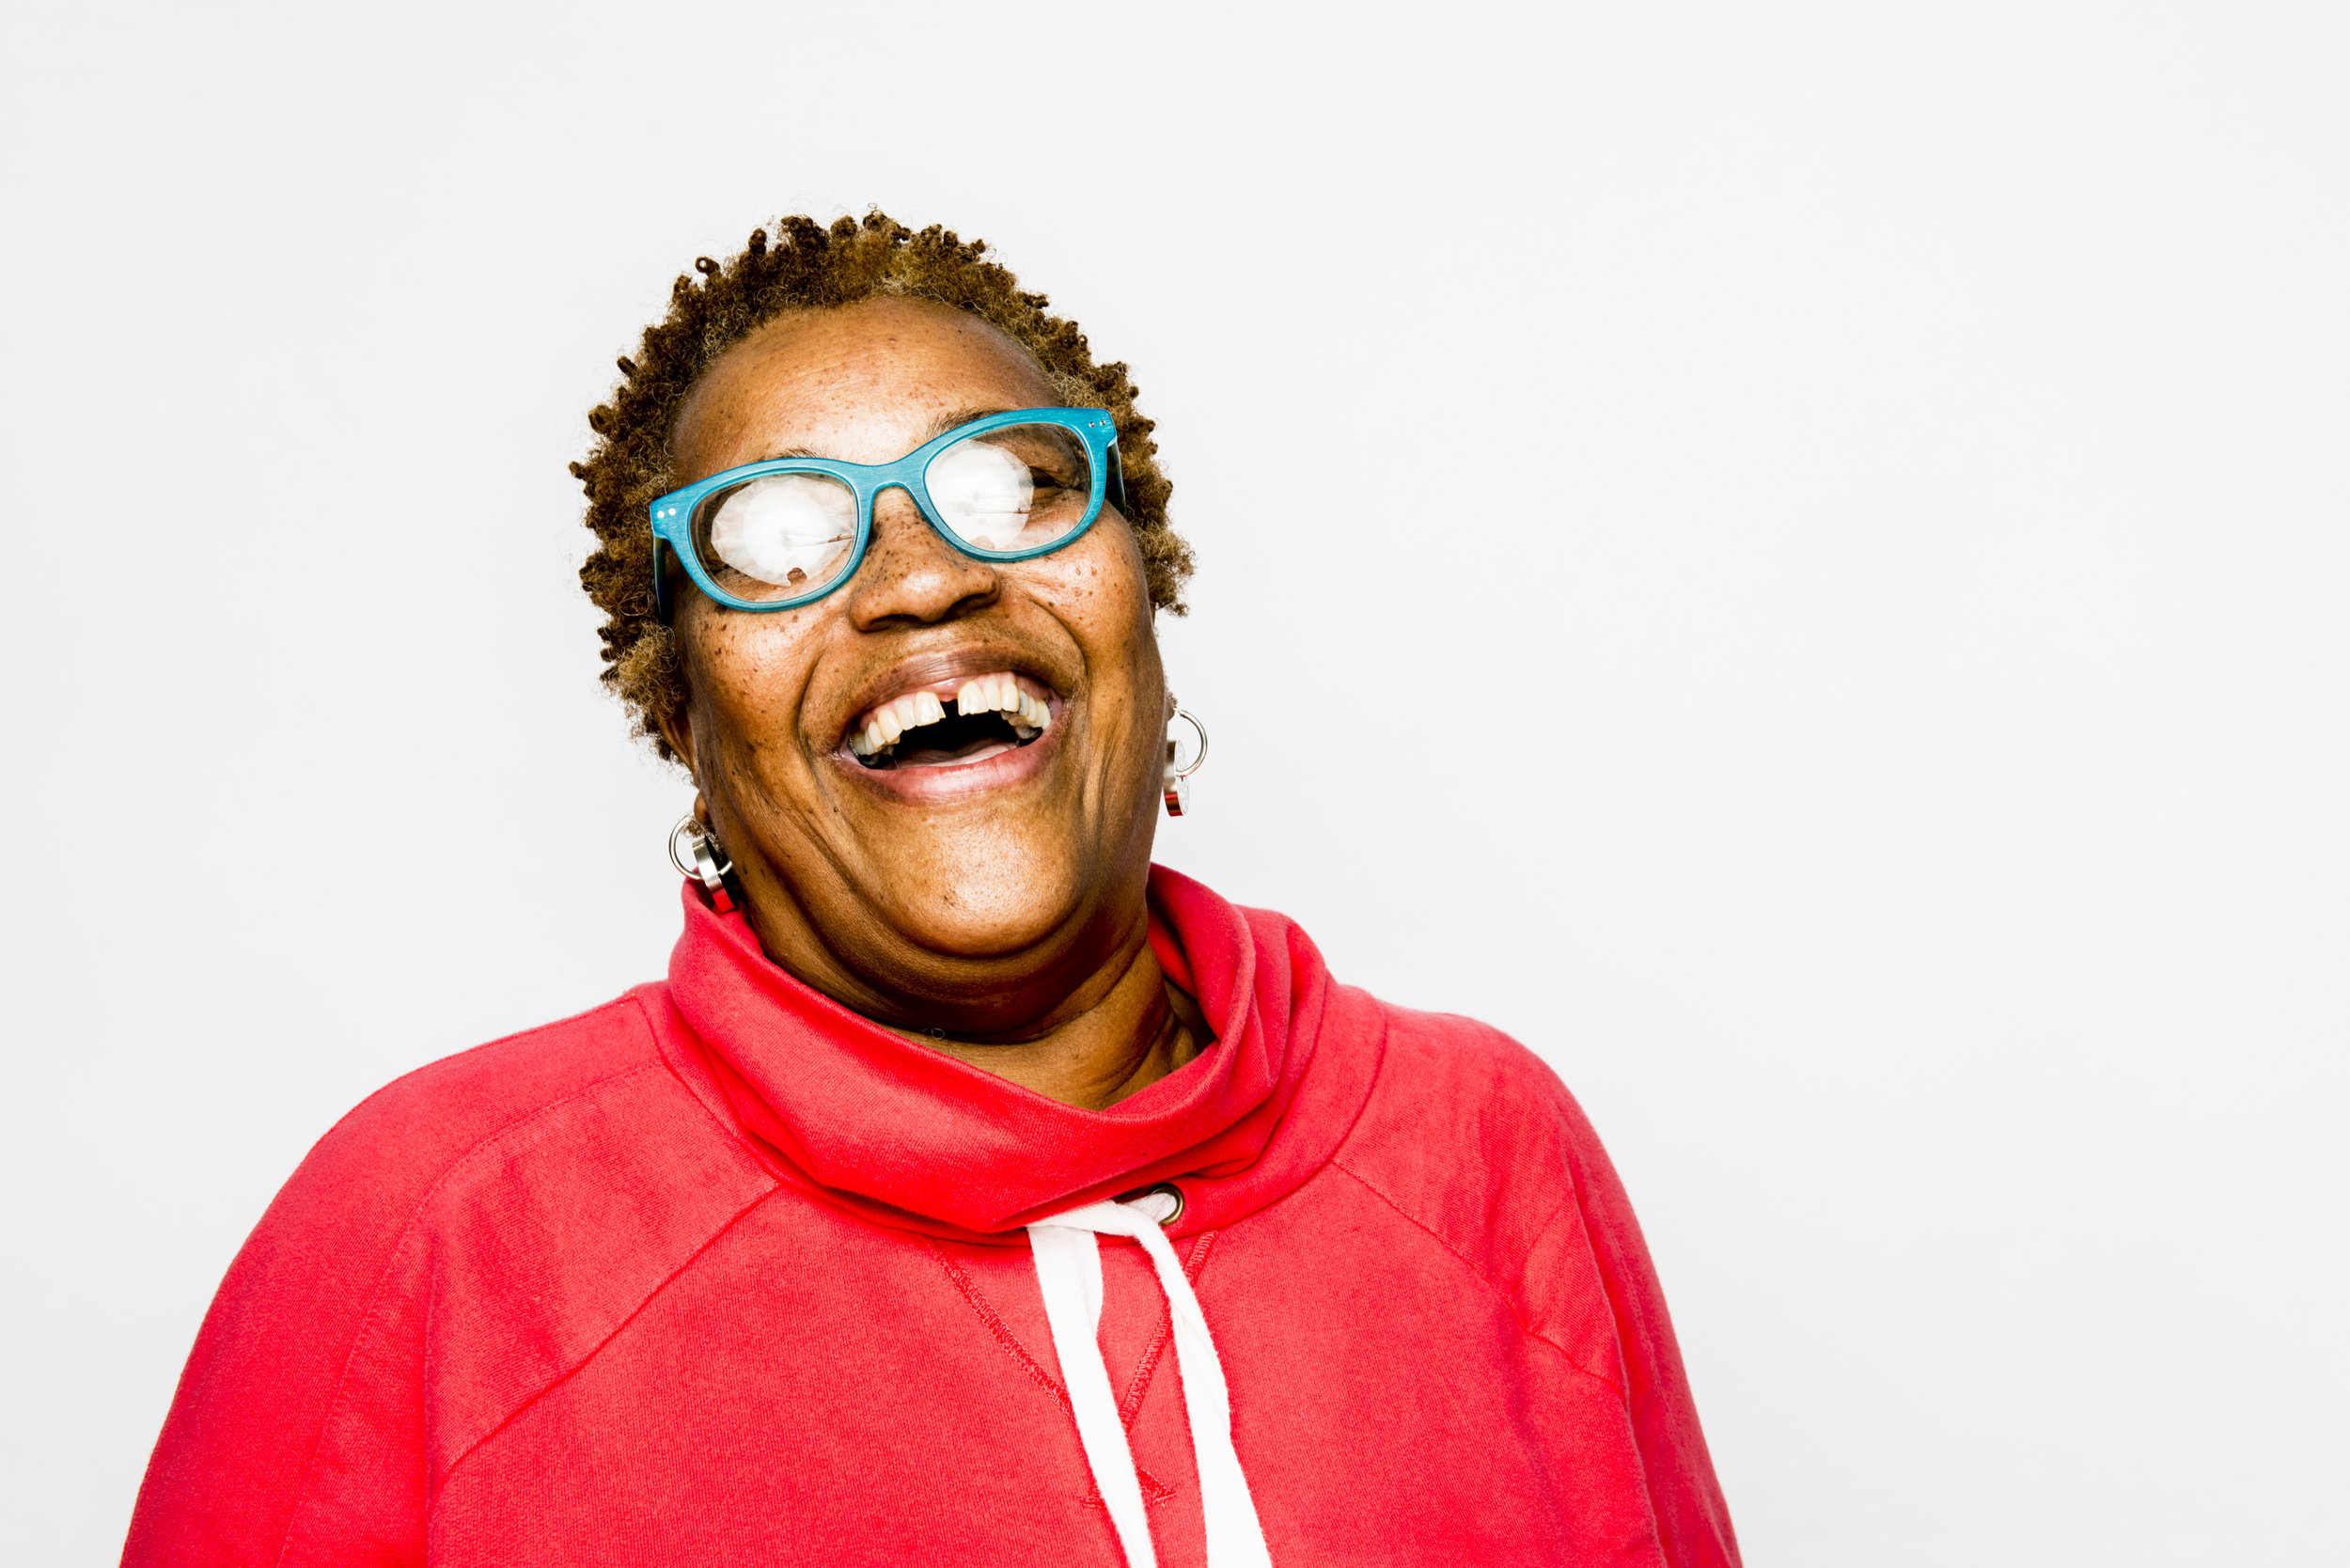 Gap-toothed woman smiling broadly on white background